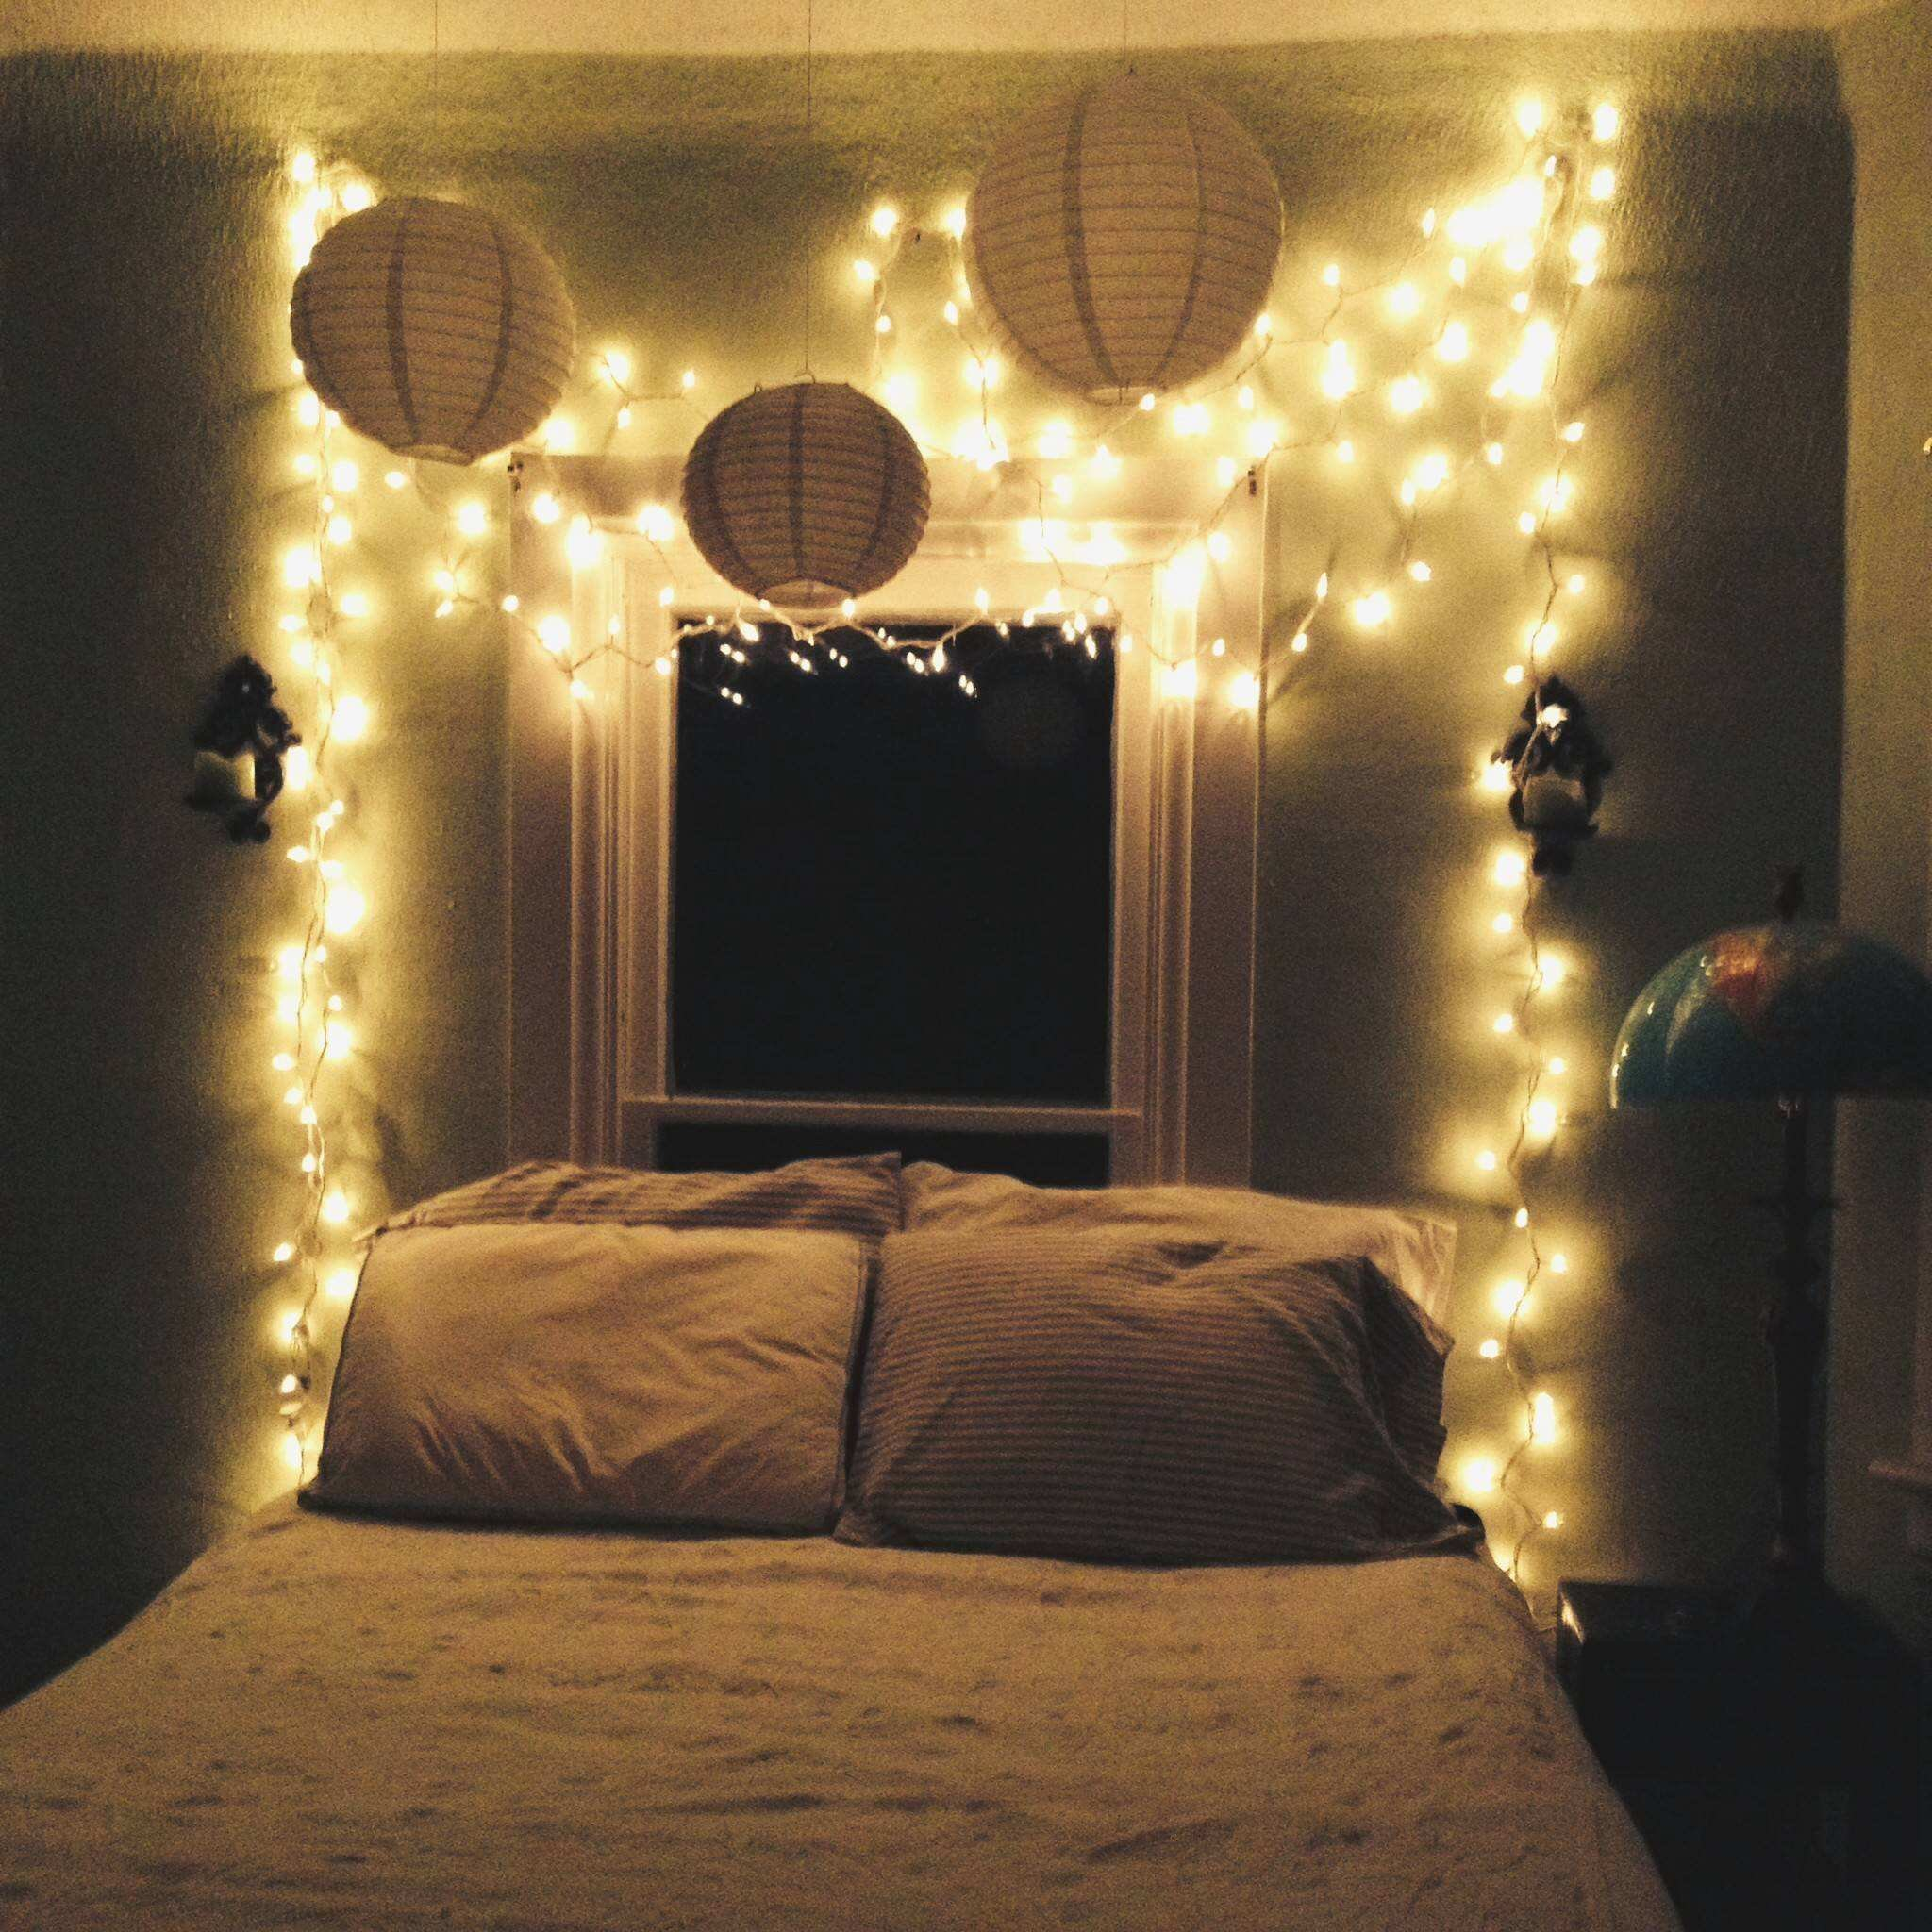 Best Bedroom Lighting Star Fairy Lights For String Tumblr With Pictures